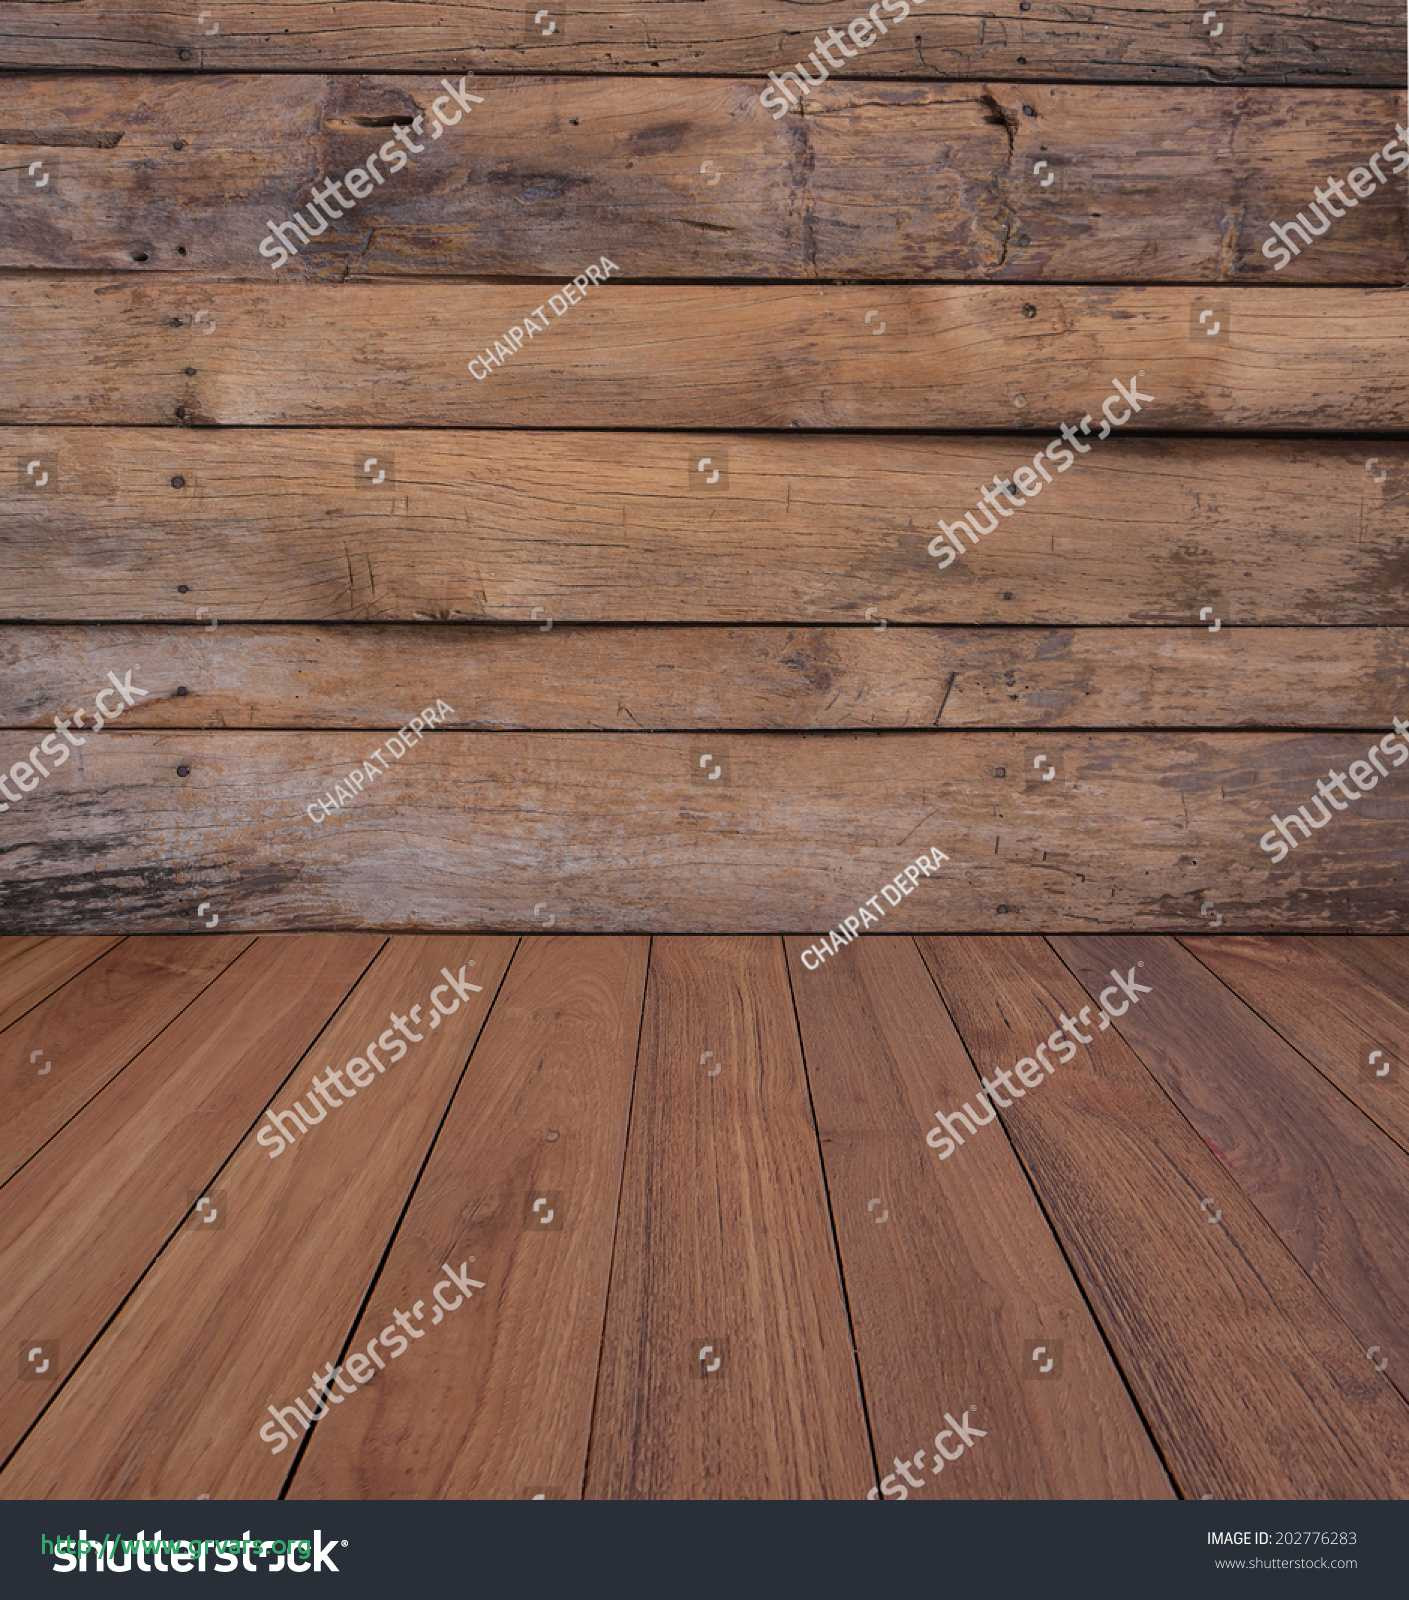 solid hardwood flooring uk of 16 inspirant how to lay out wood flooring ideas blog pertaining to how to lay out wood flooring beau od wood wall wood floor stock royalty free